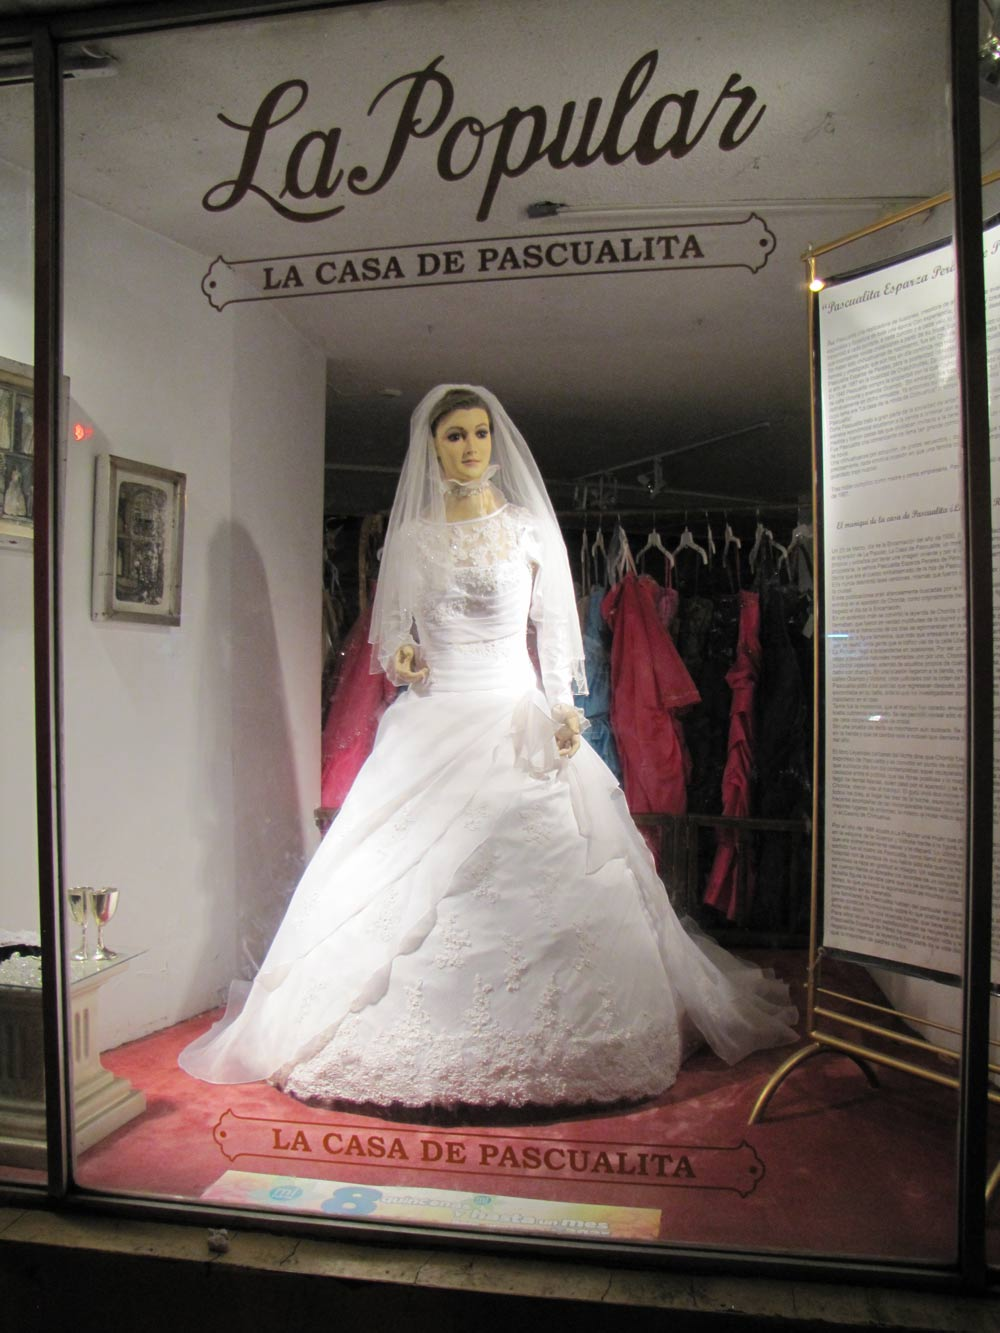 Image result for La Pascualita